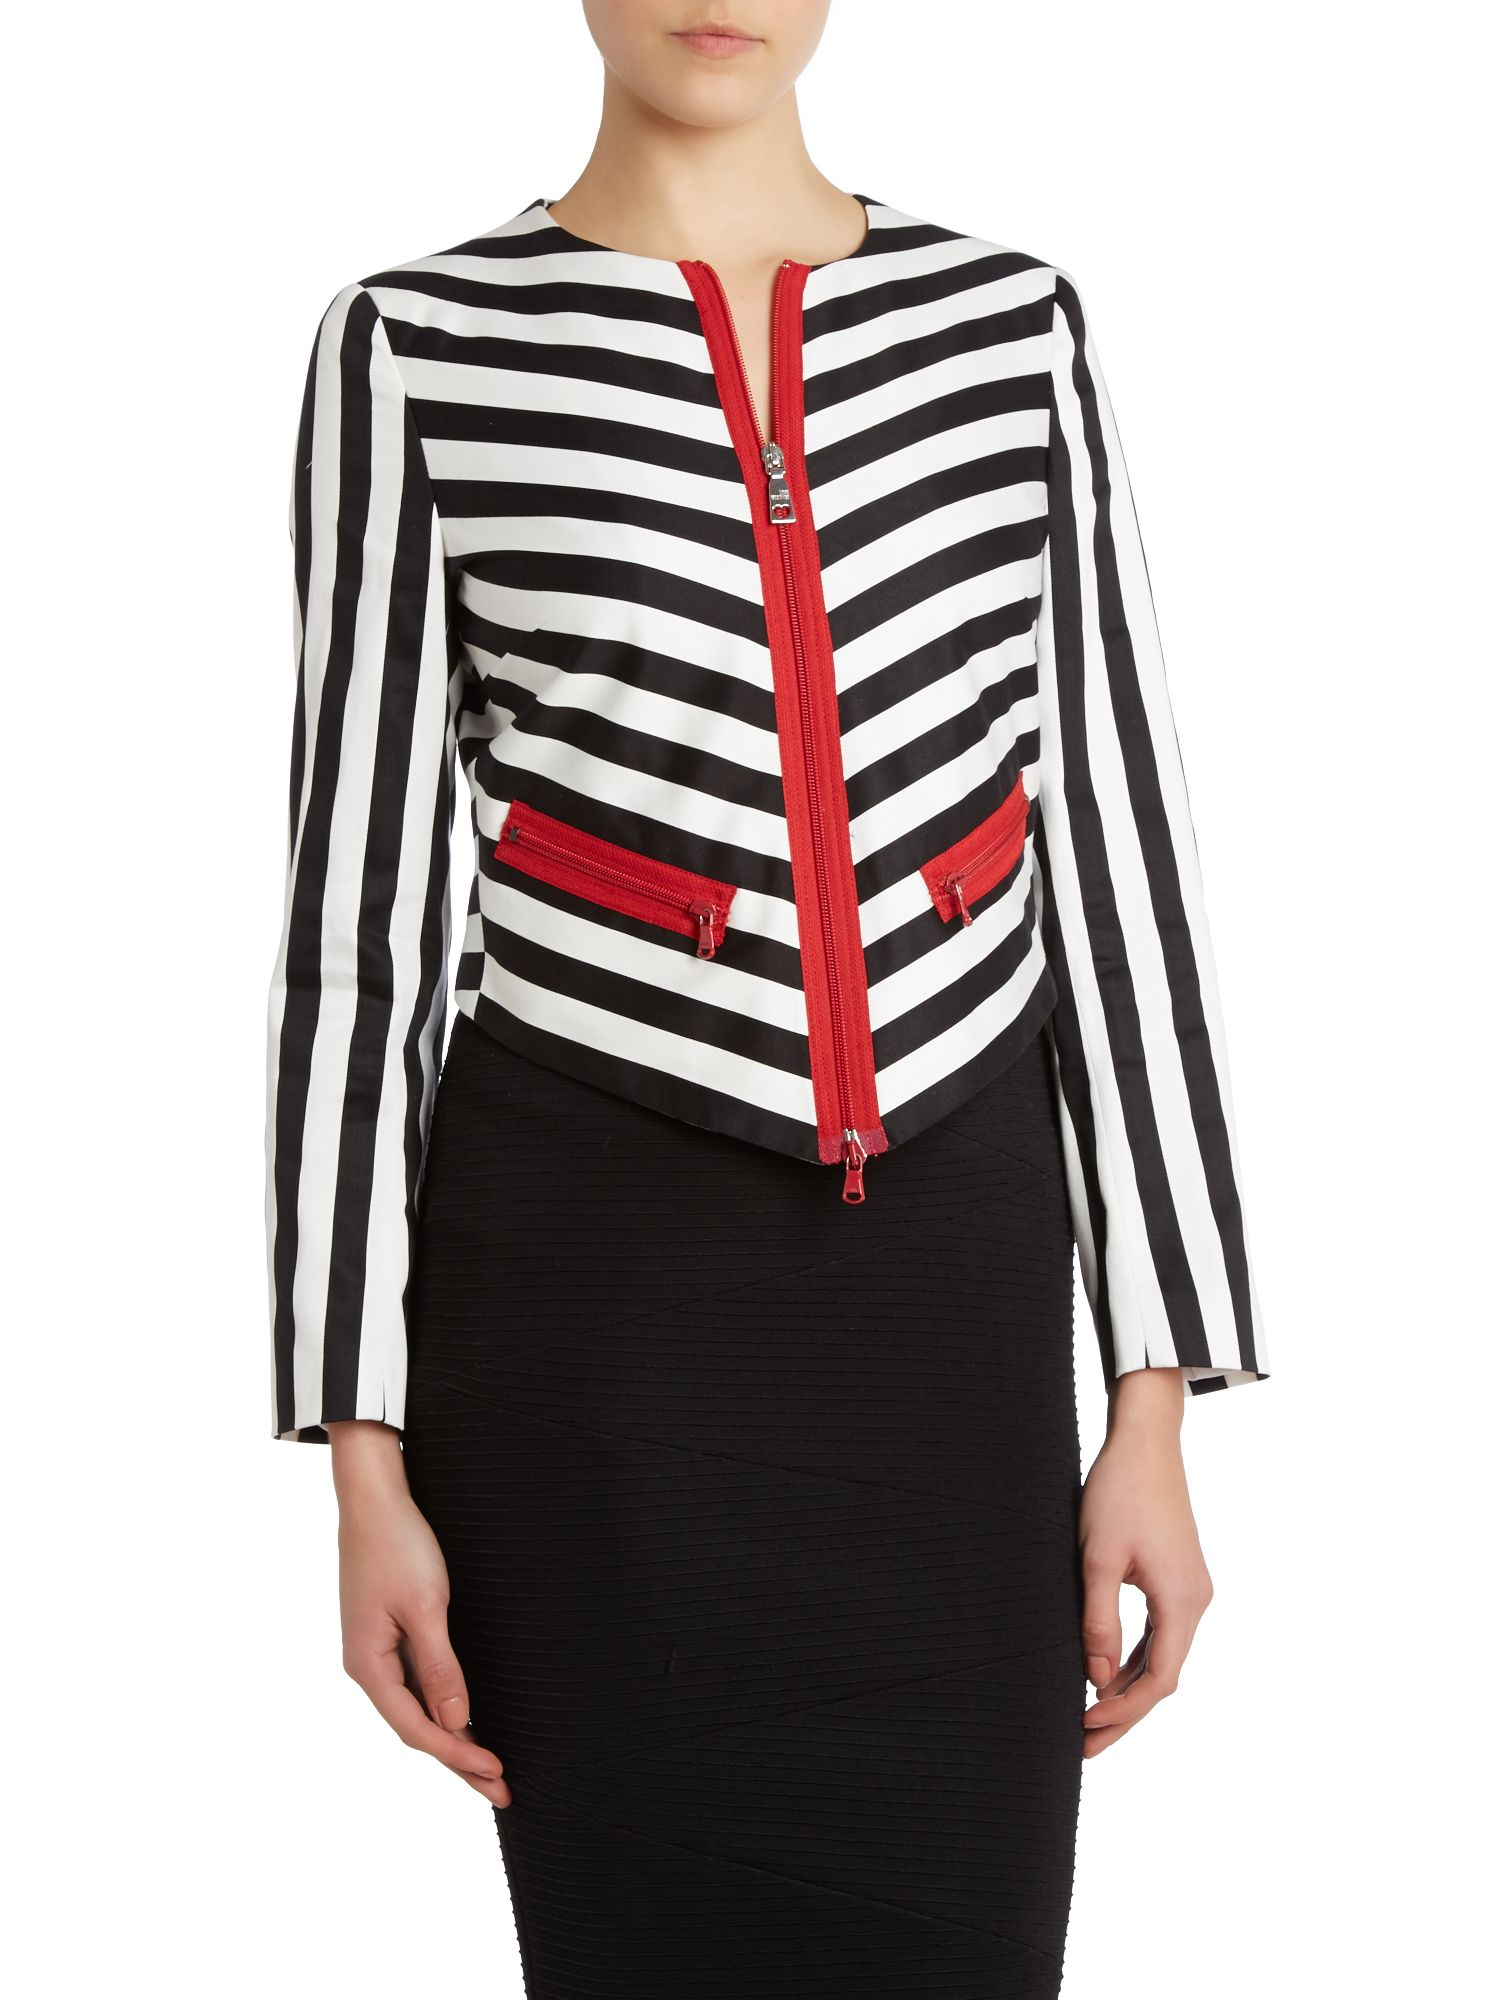 Monochrome stripe and red jacket